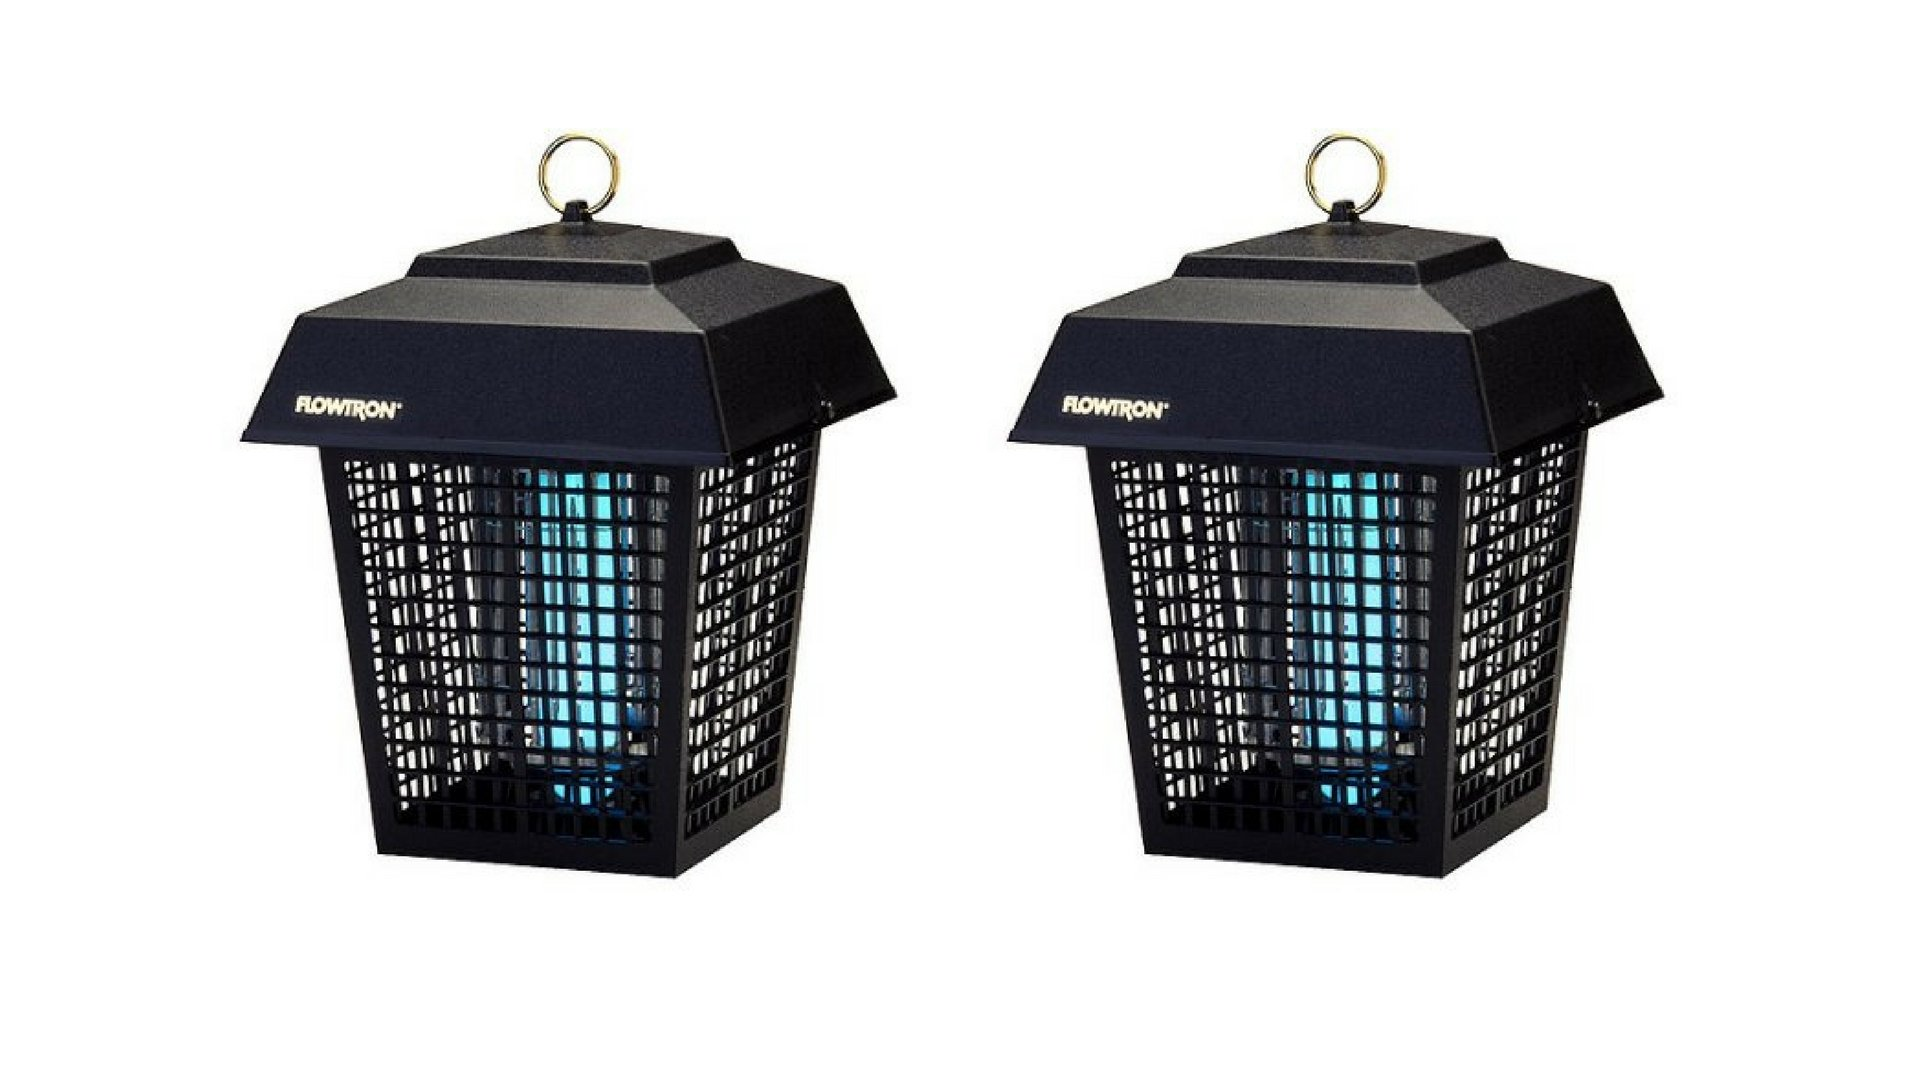 Electric Flowtron Insect Killer Lantern Half-Acre Set of 2